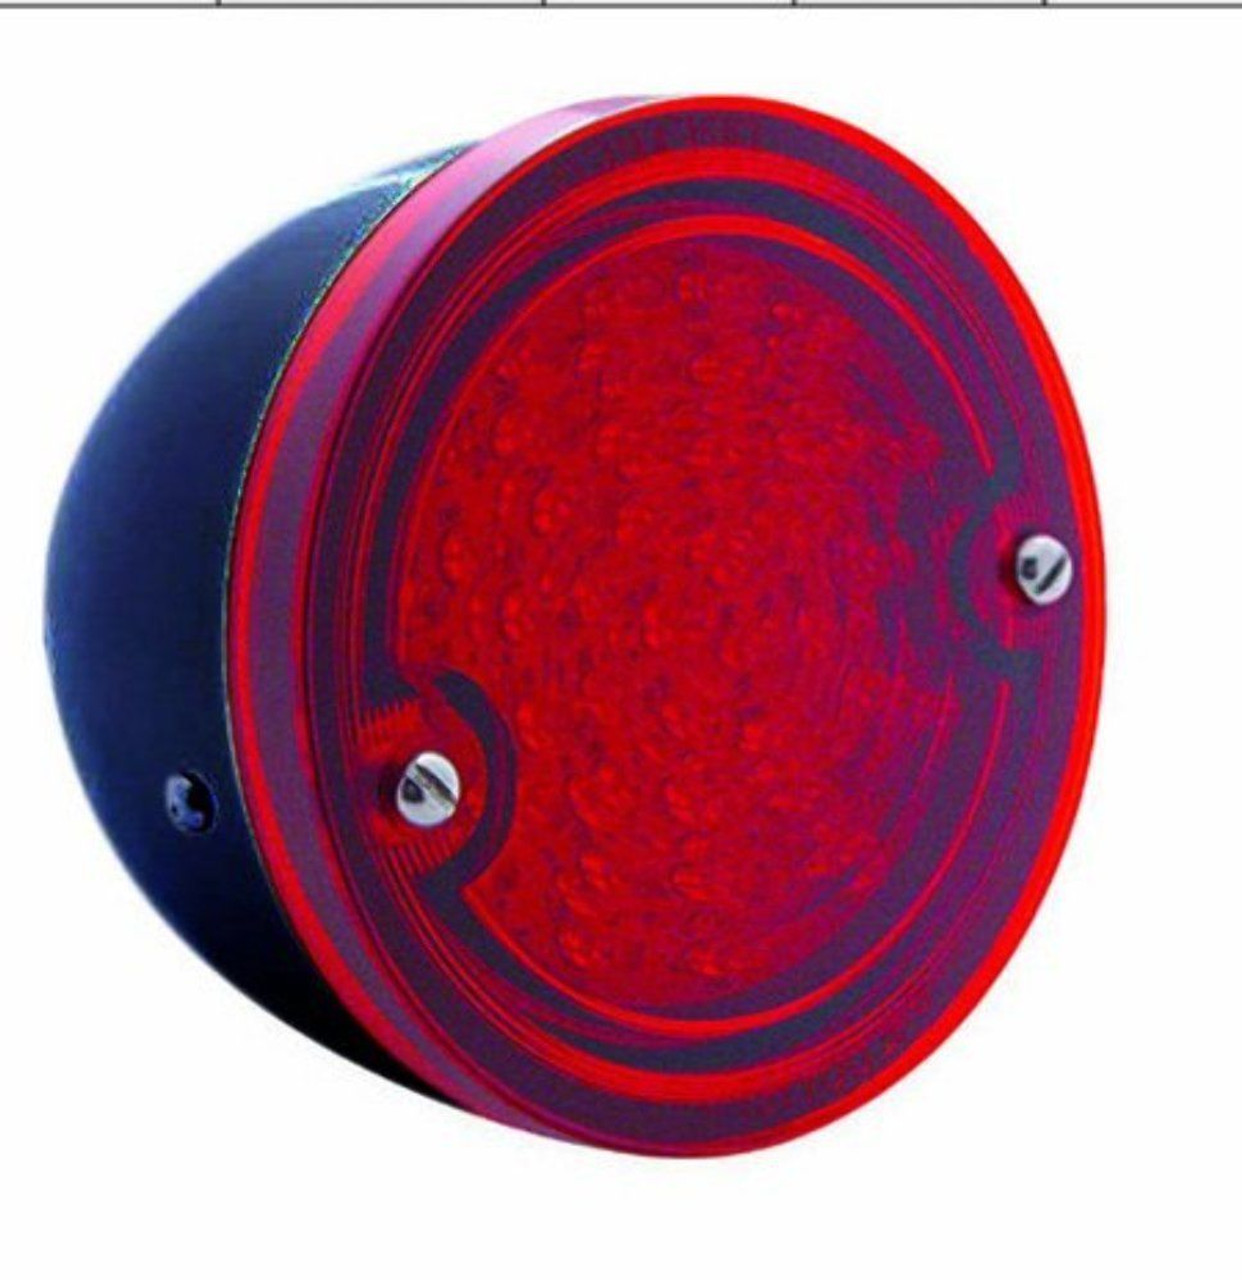 LED TAIL LIGHT WITH BLACK HOUSING & RED LENS FITS 1960-66 CHEVY STEPSIDE PICKUP